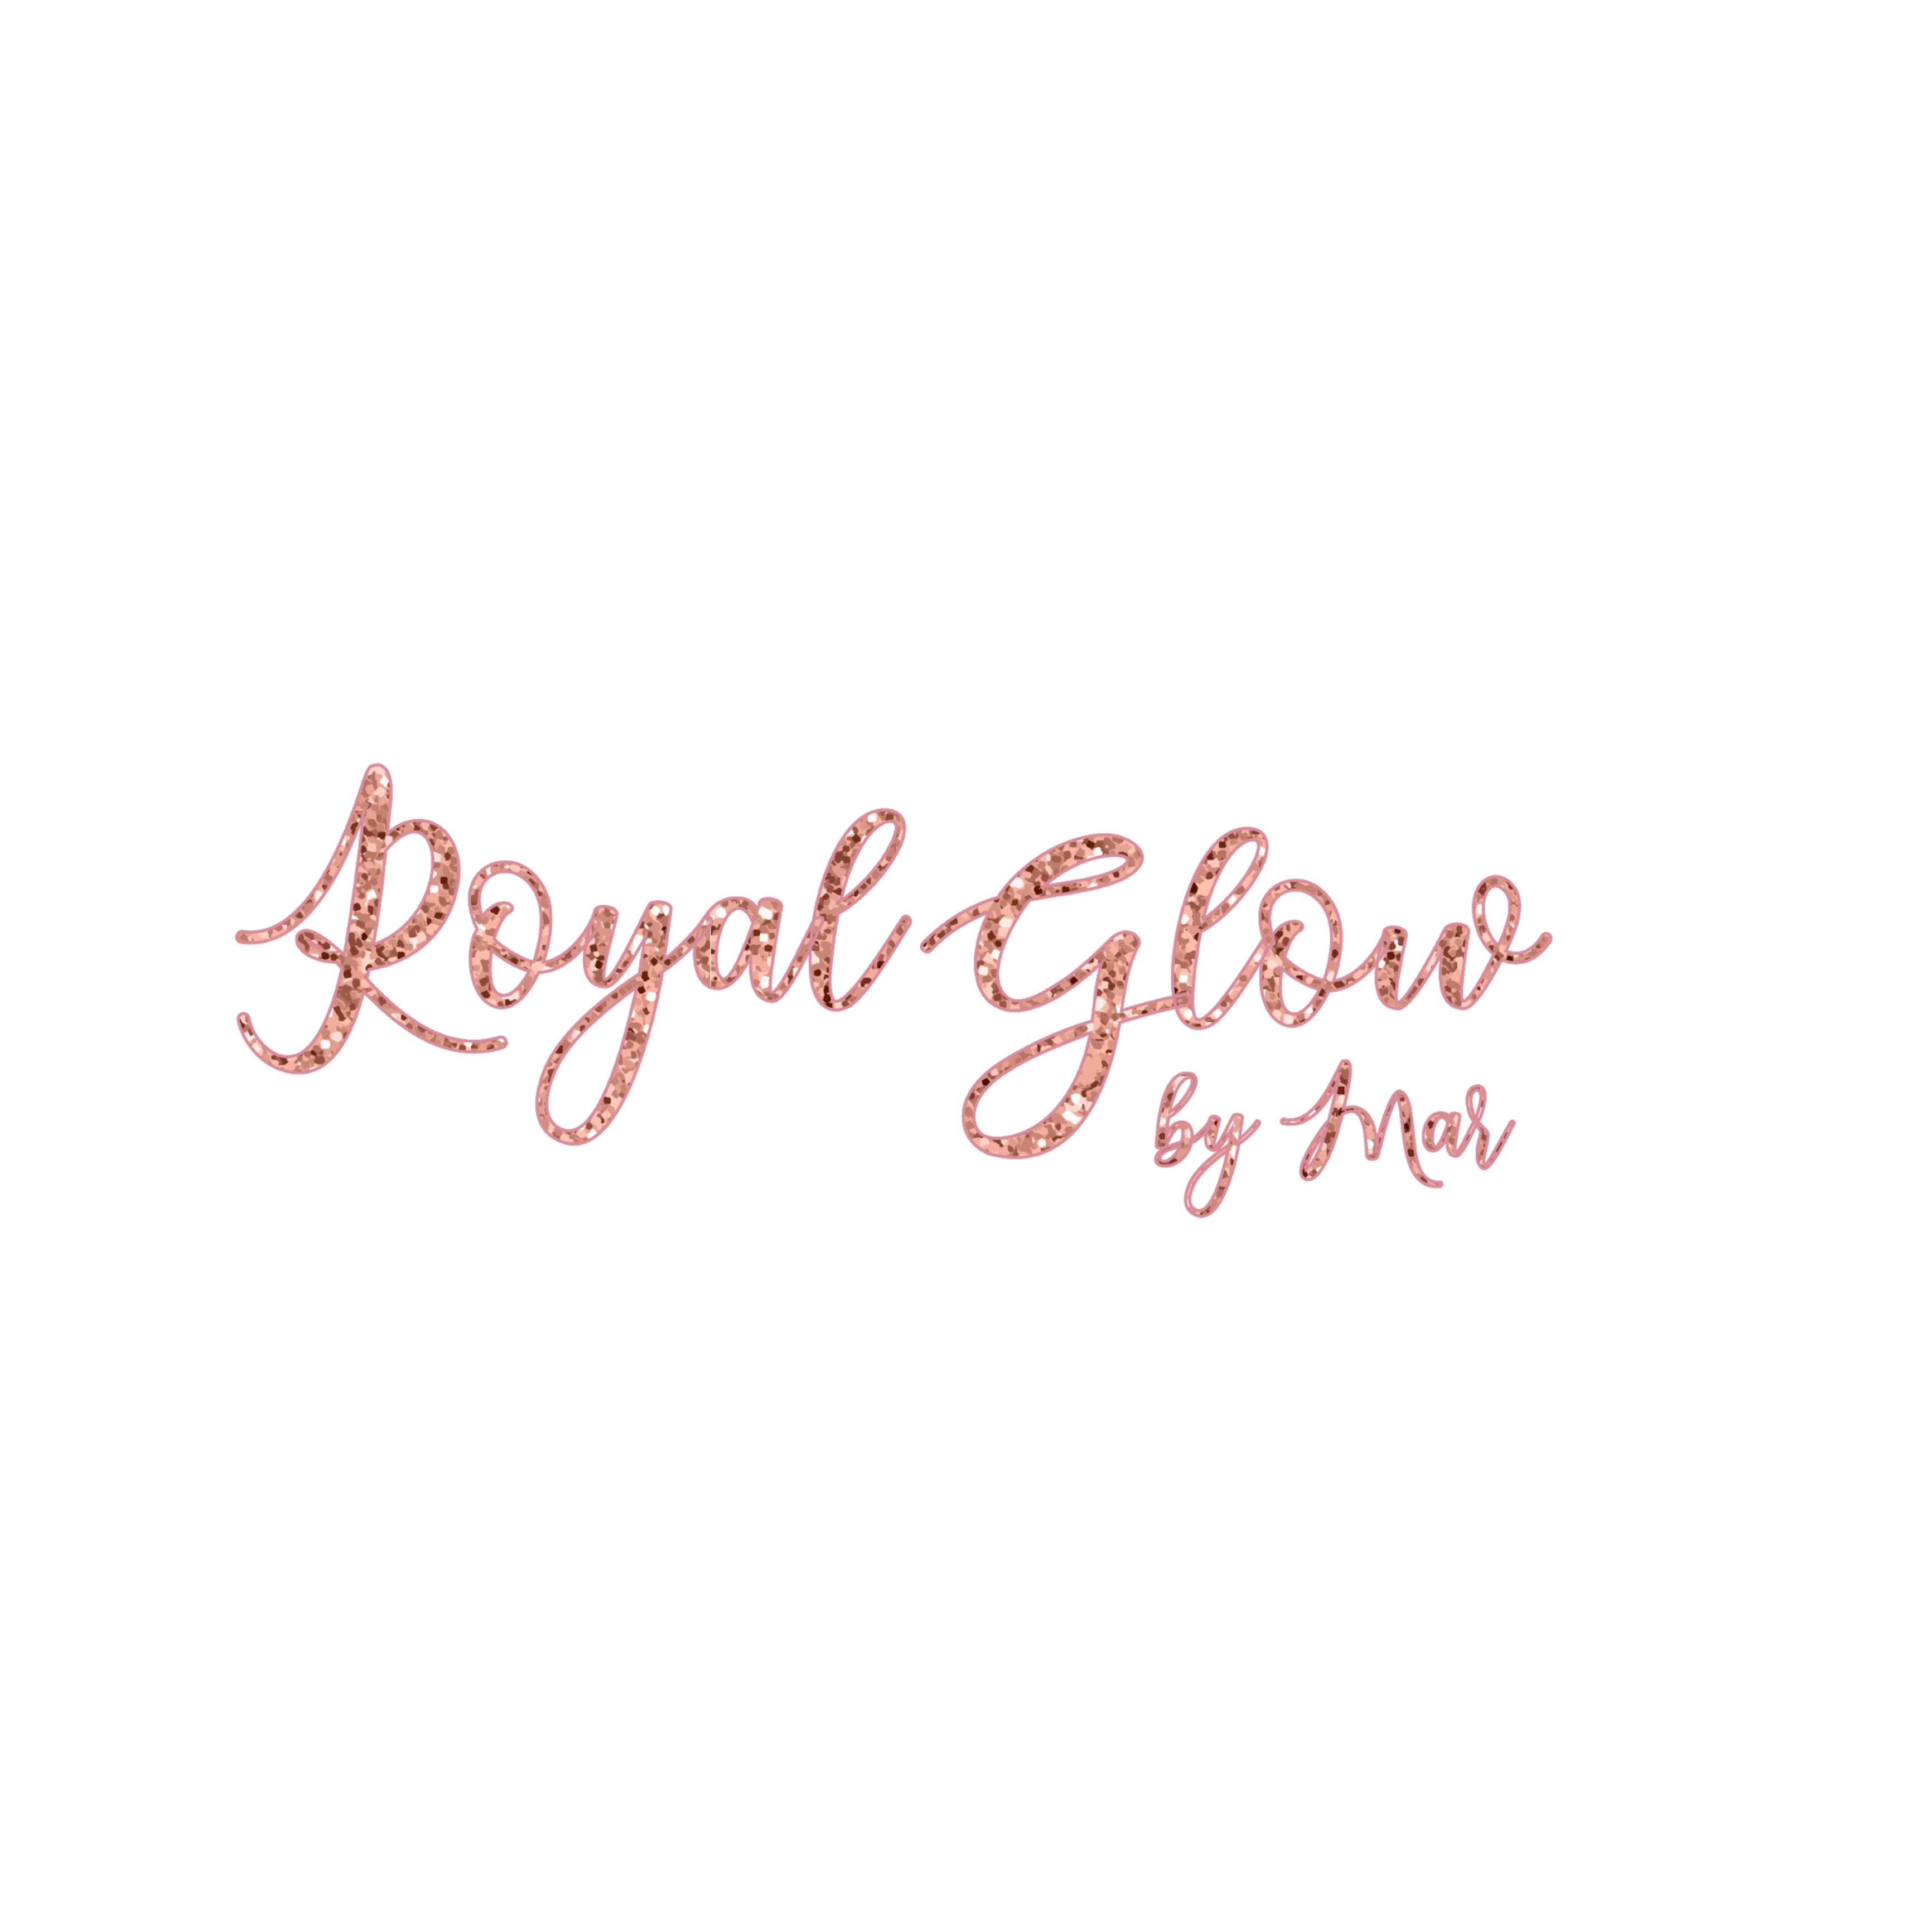 Royal Glow by Mar's account image